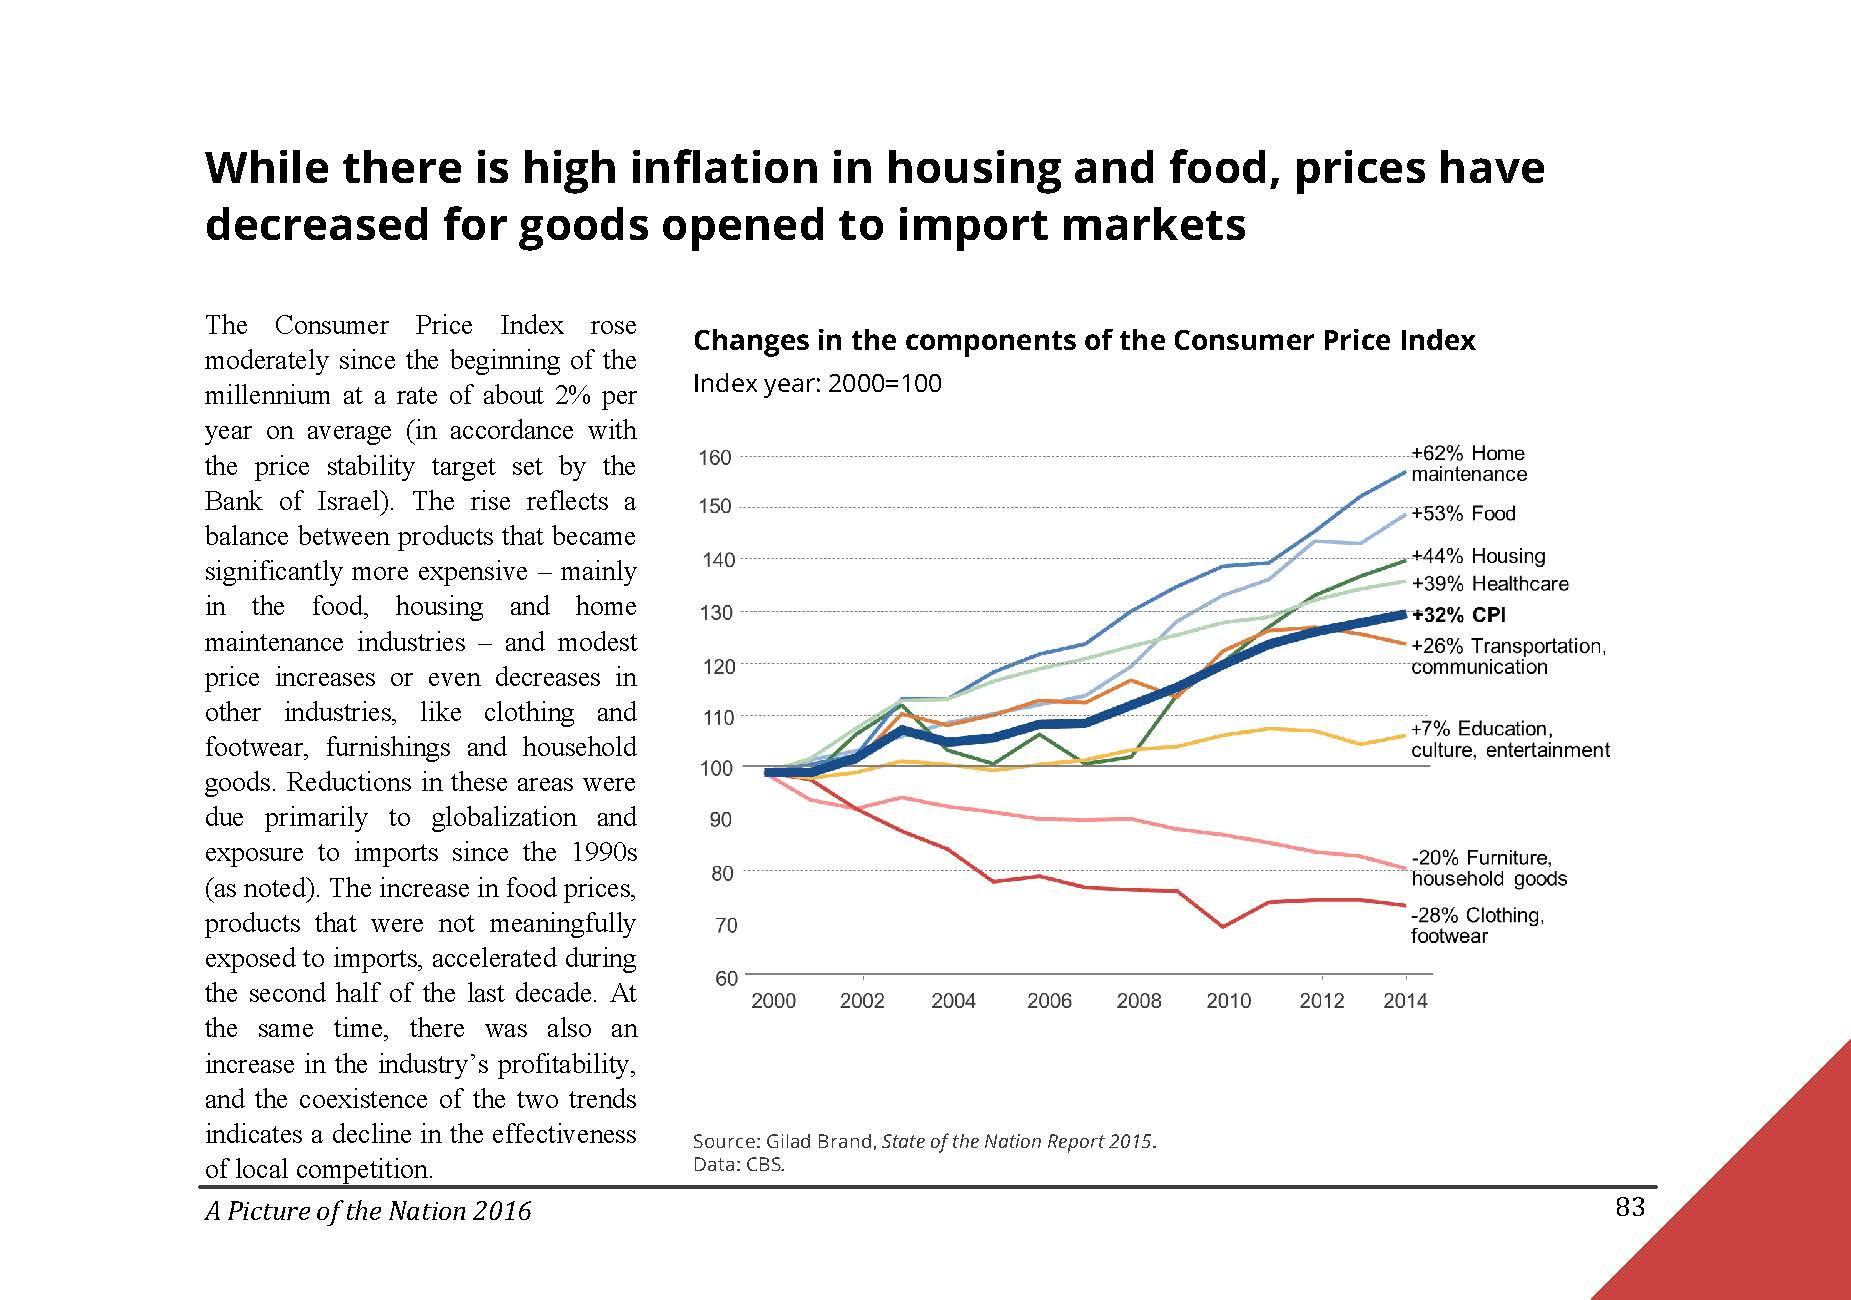 While there is high inflation in housing and food, prices have decreased for goods opened to import markets in Israel